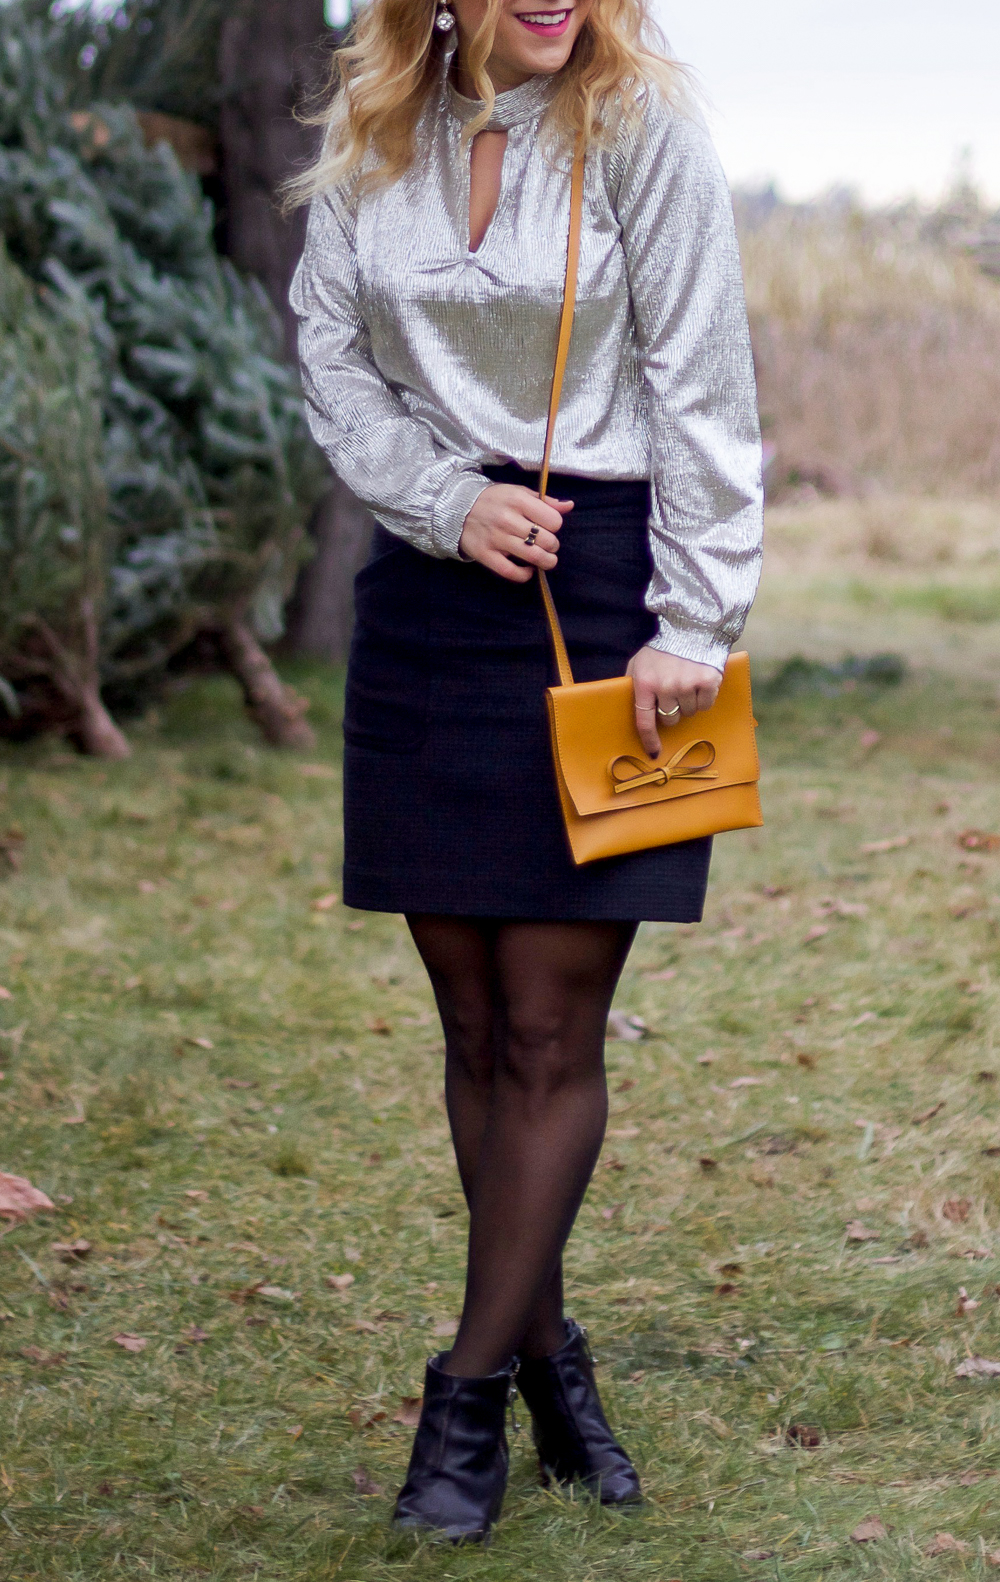 Holiday outfit idea, wearing a metallic top and a fitted skirt with black tights